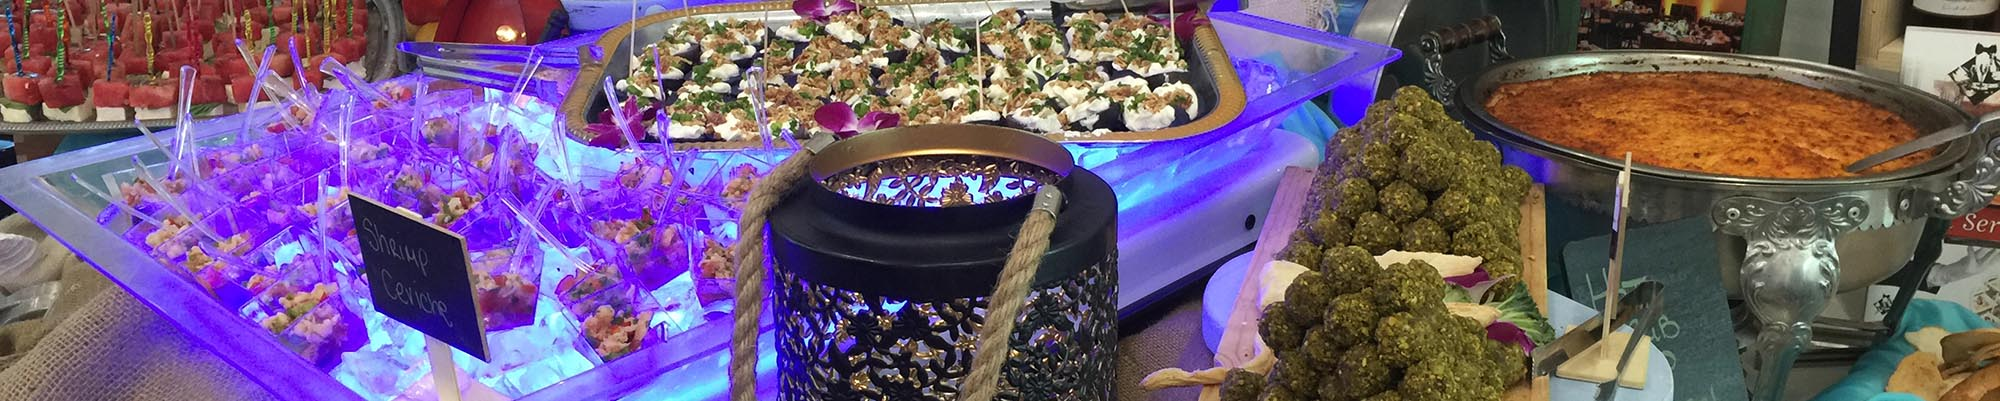 Corporate Catering Palm Harbor